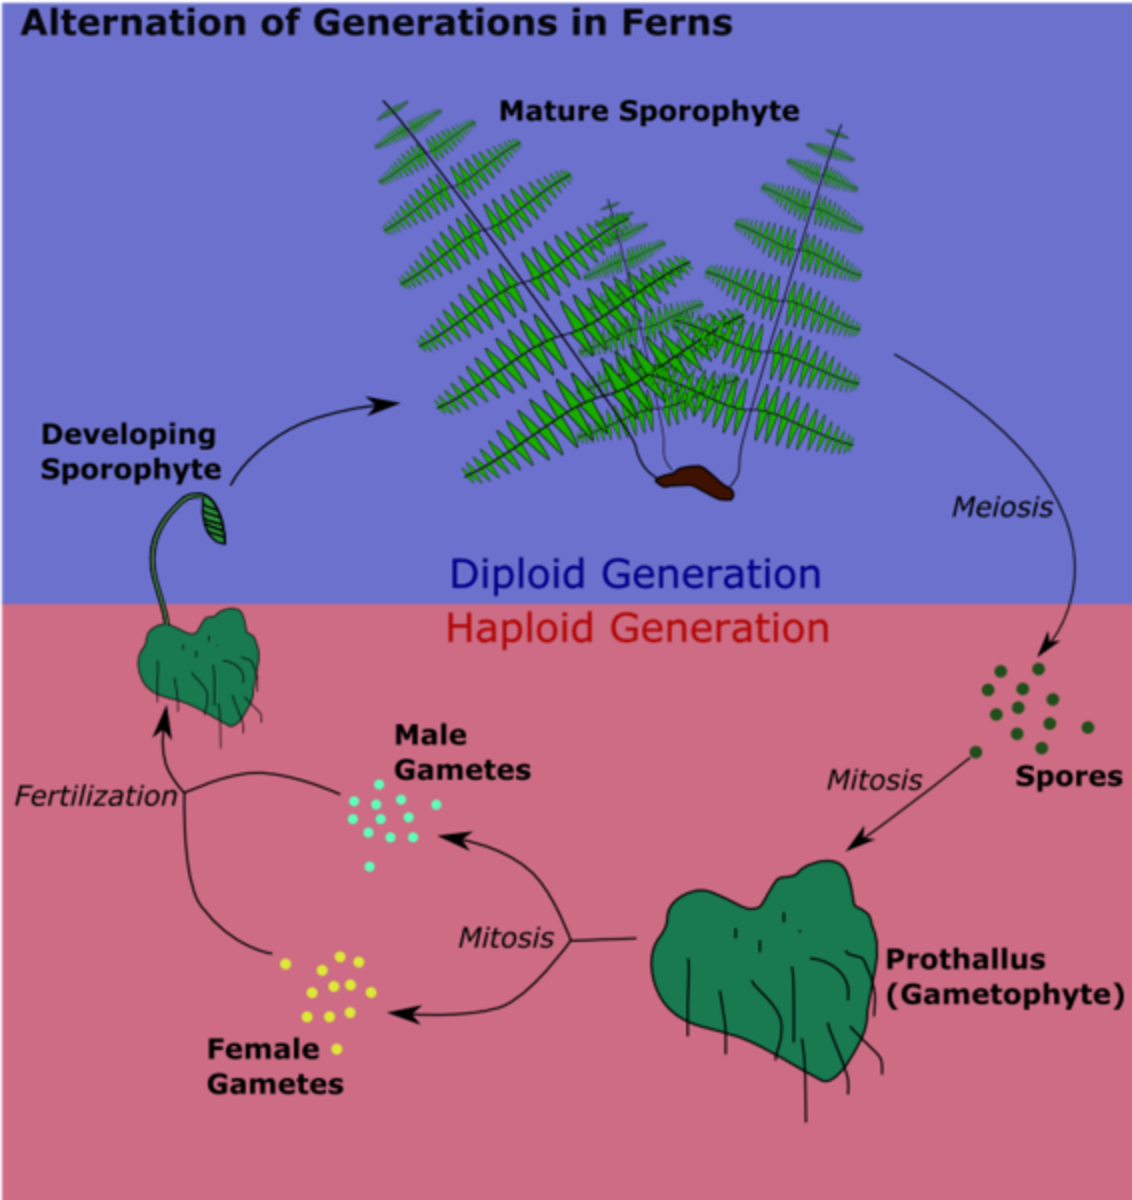 Alternation of Generations in Ferns